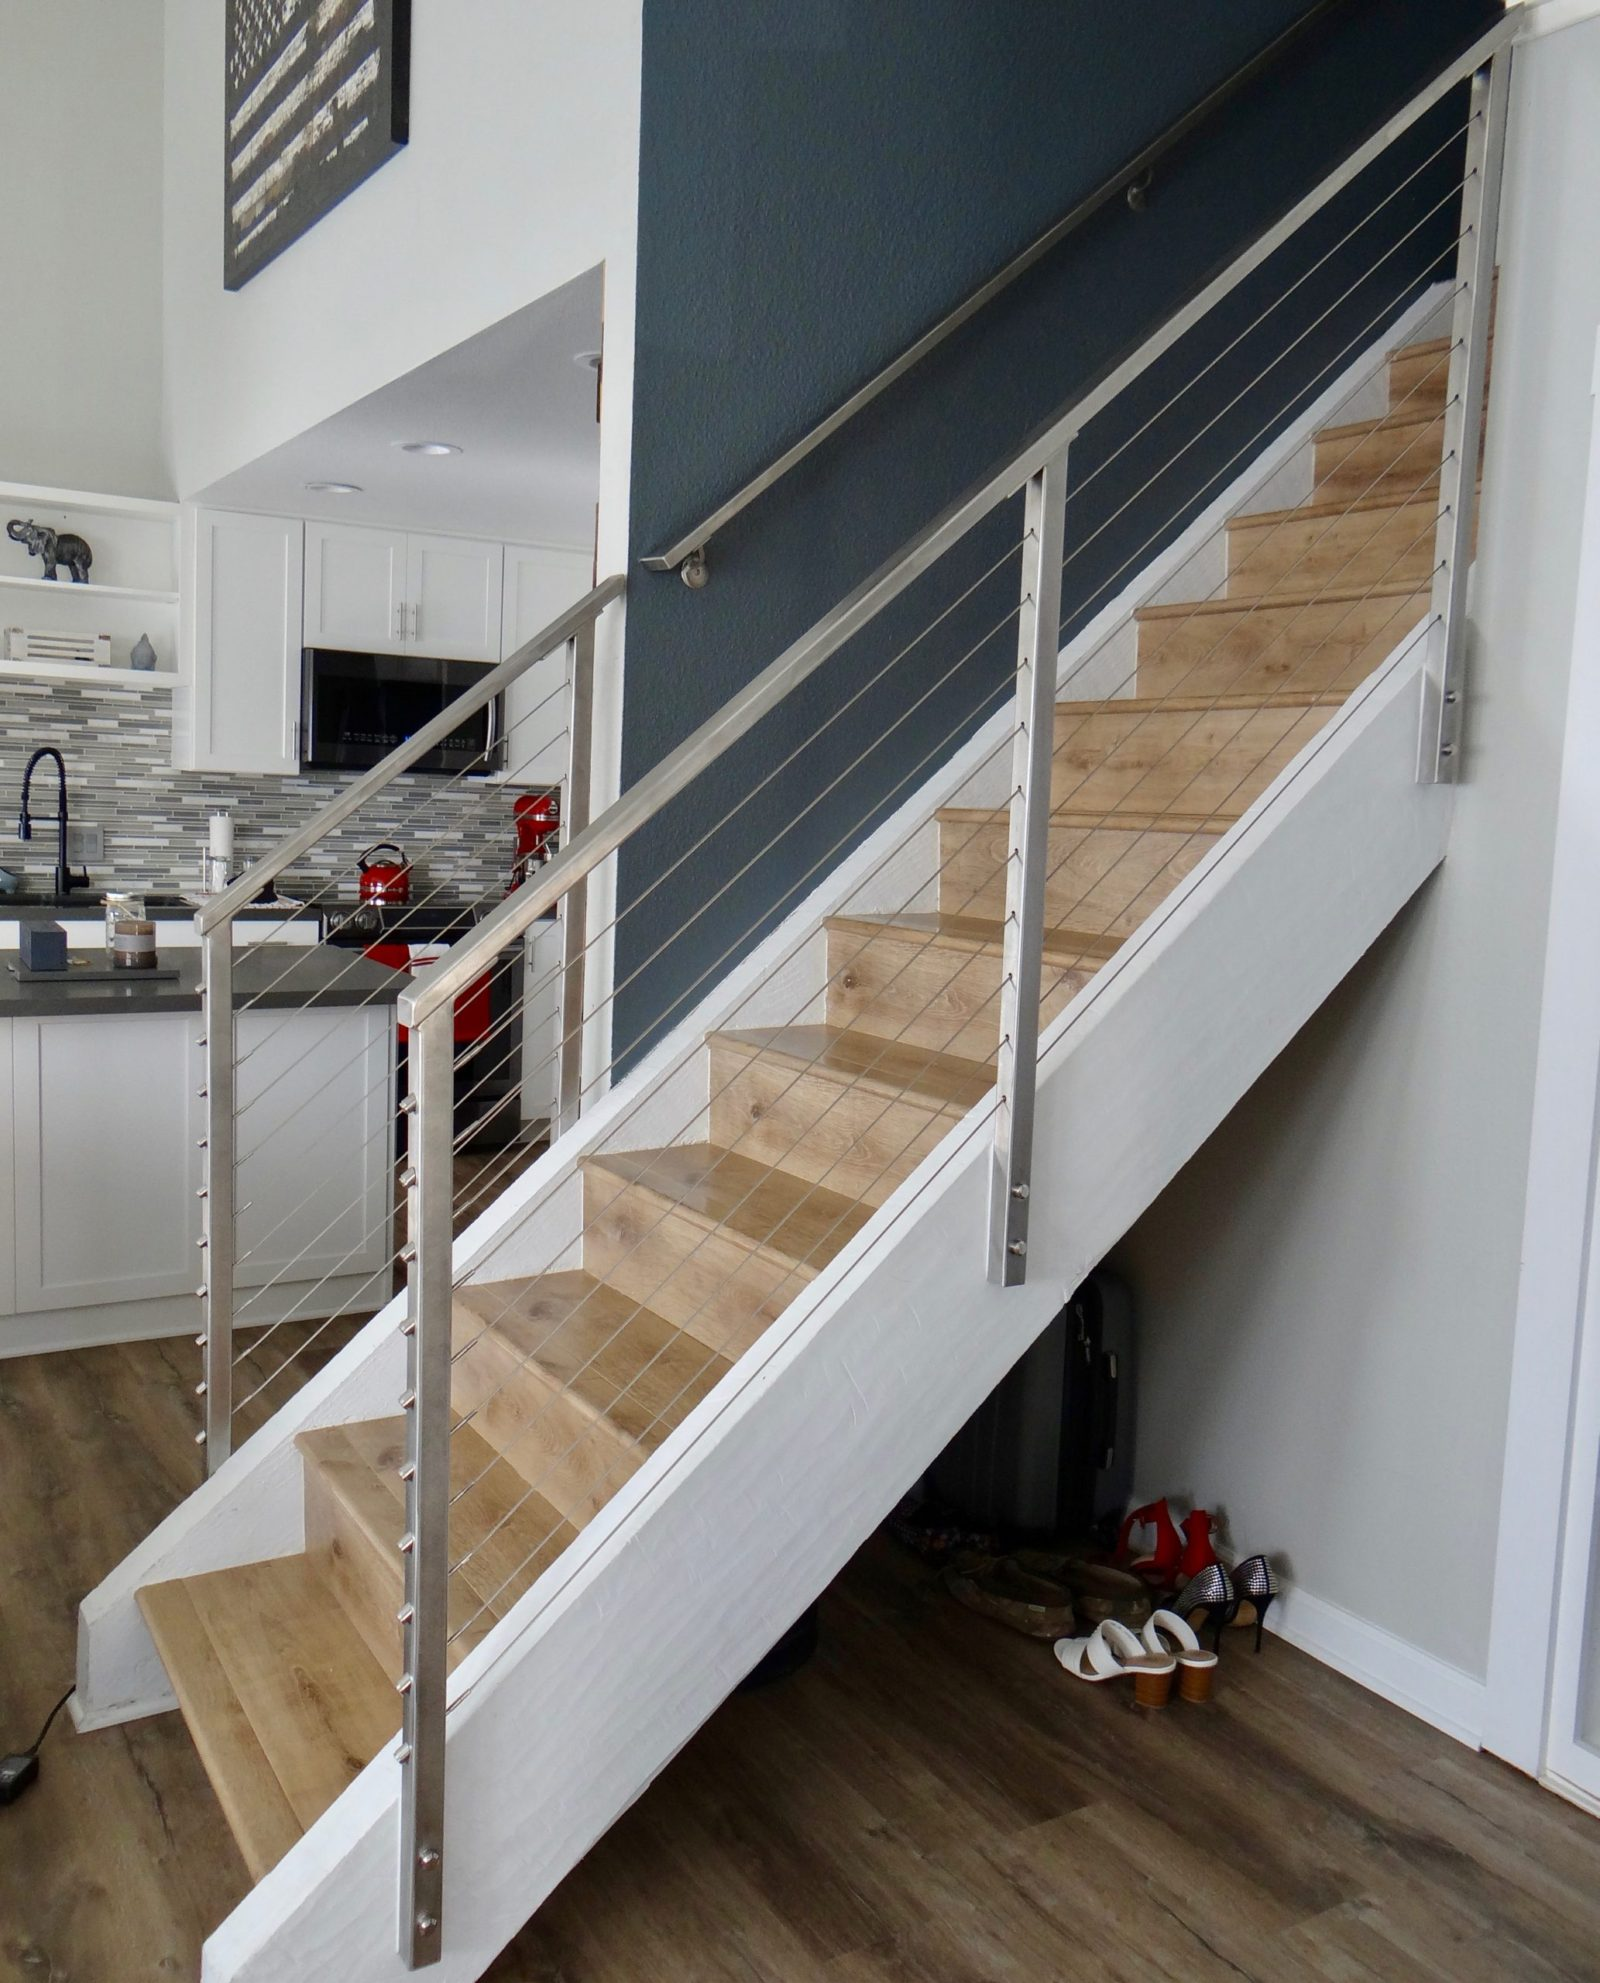 stainless steel cable railings, cable railing installers San Diego